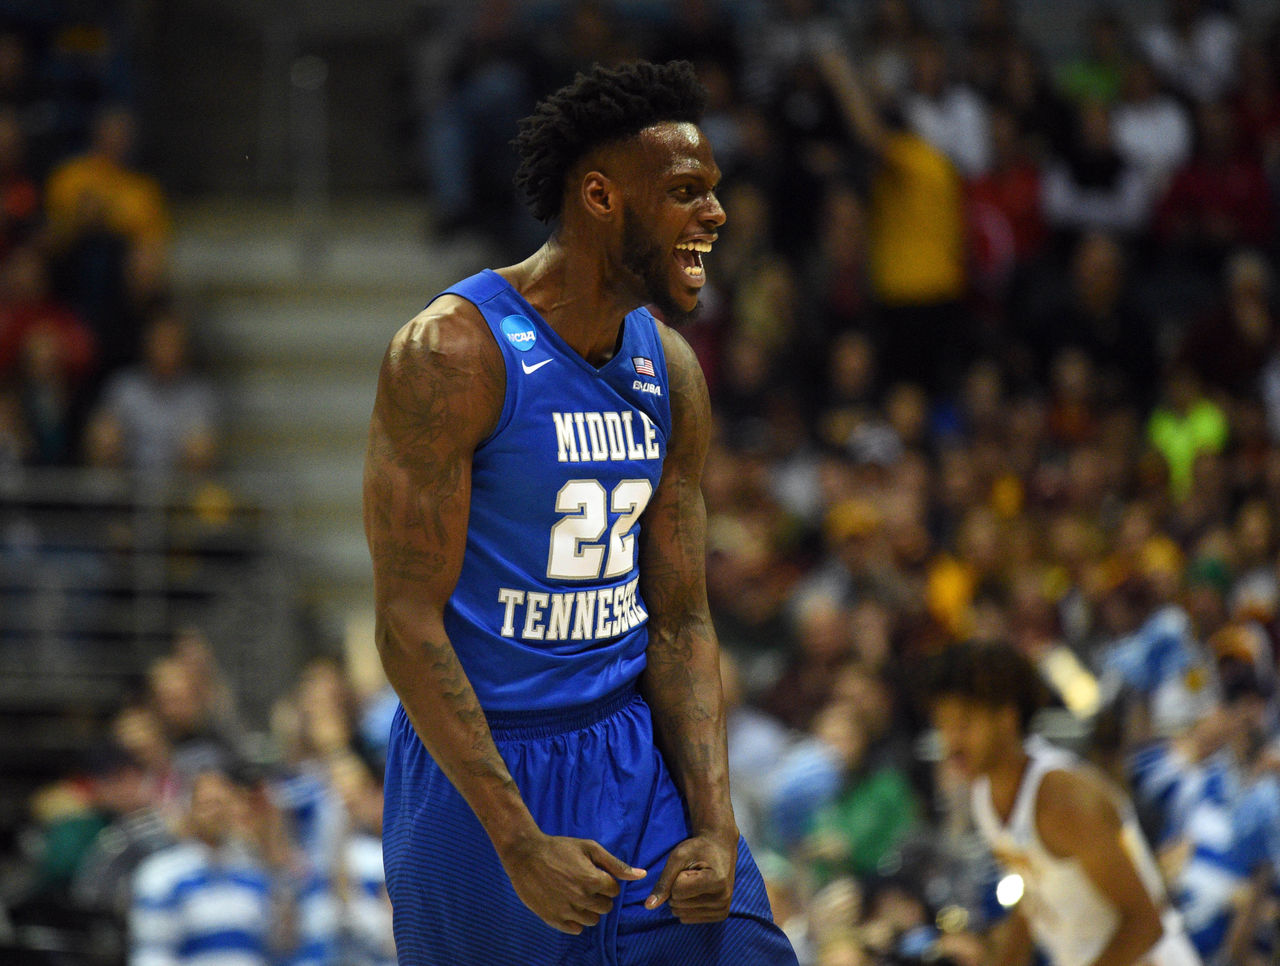 Cropped 2017 03 16t215324z 2121172116 nocid rtrmadp 3 ncaa basketball ncaa tournament first round minnesota vs middle tennessee state